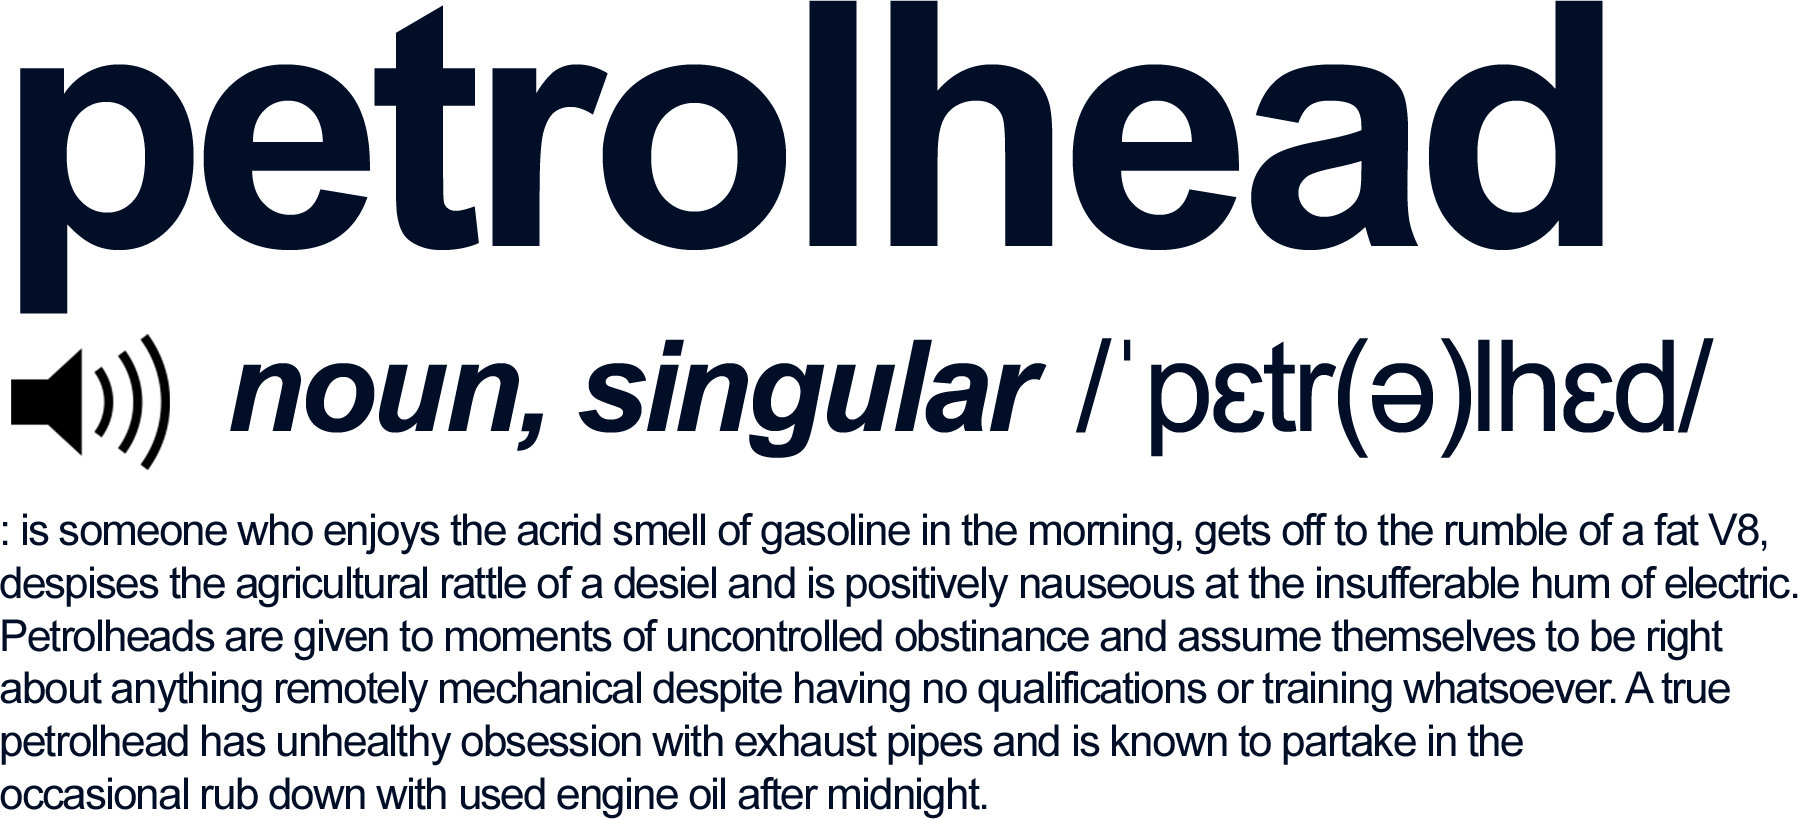 Petrolhead Definition